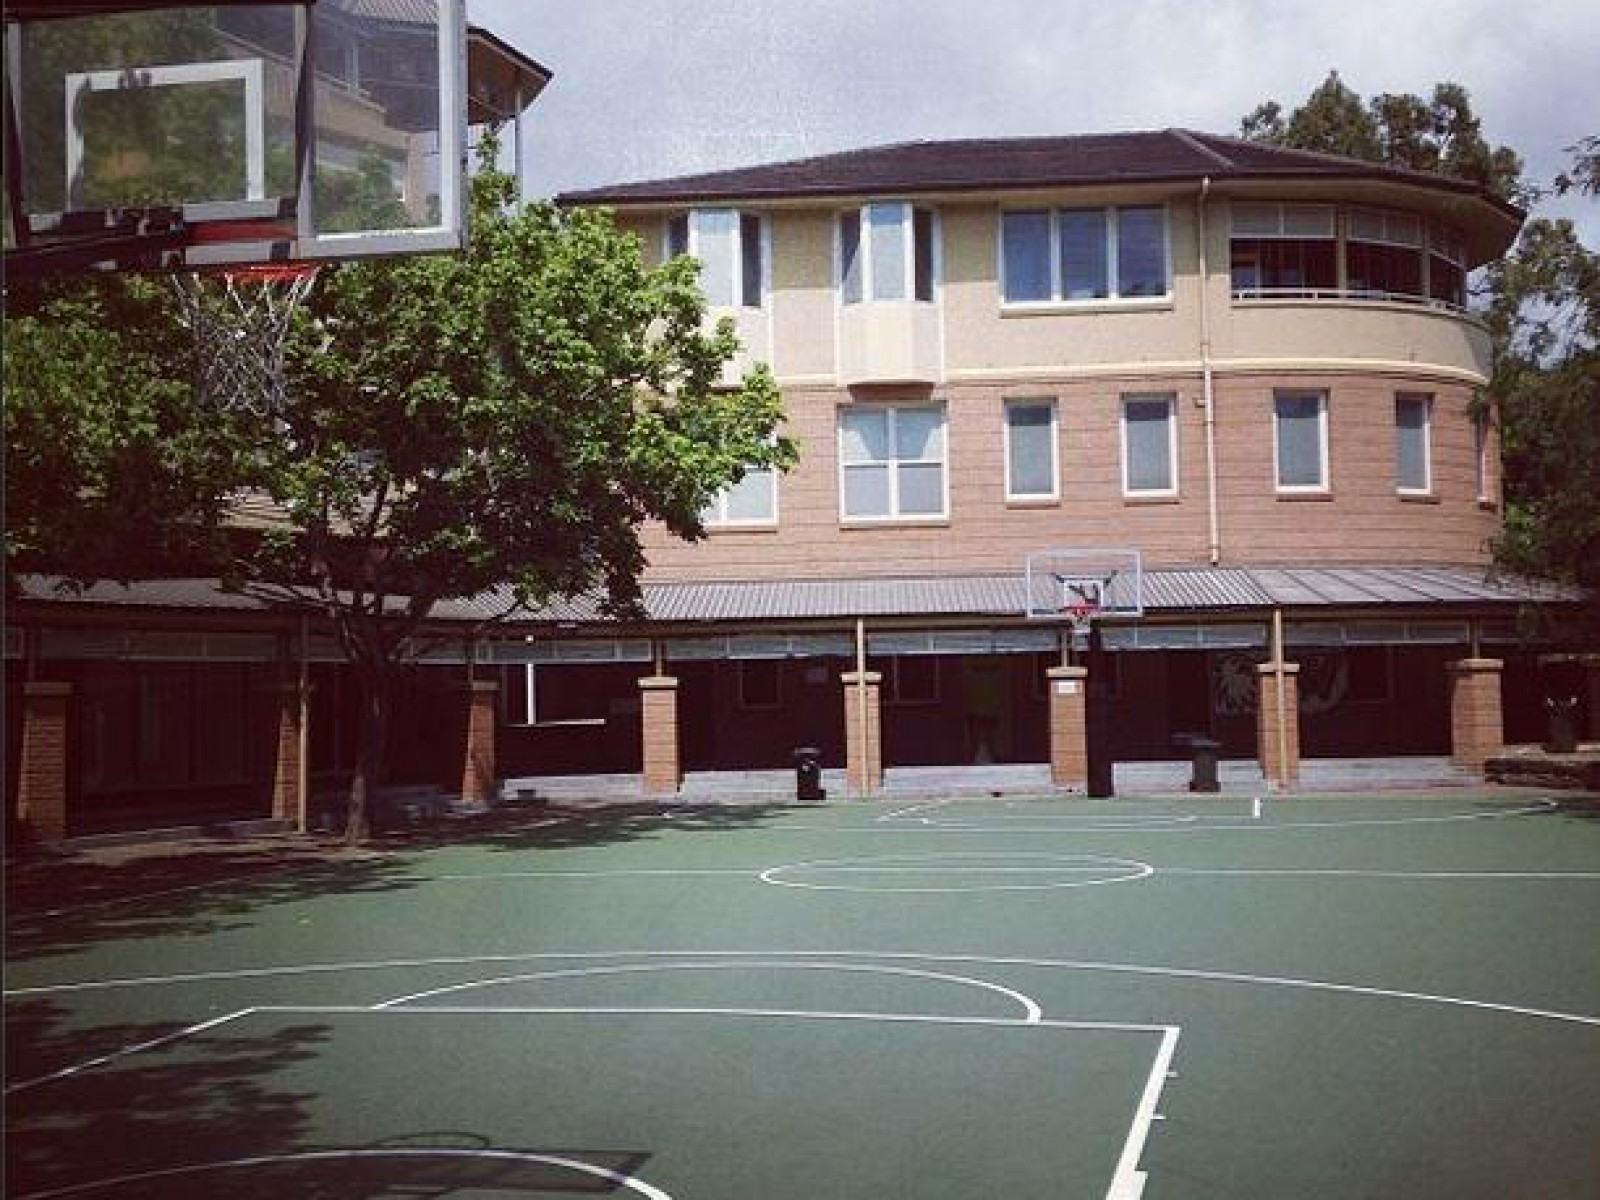 Cranbrook Outdoor Court, Bellevue Hill, Australia